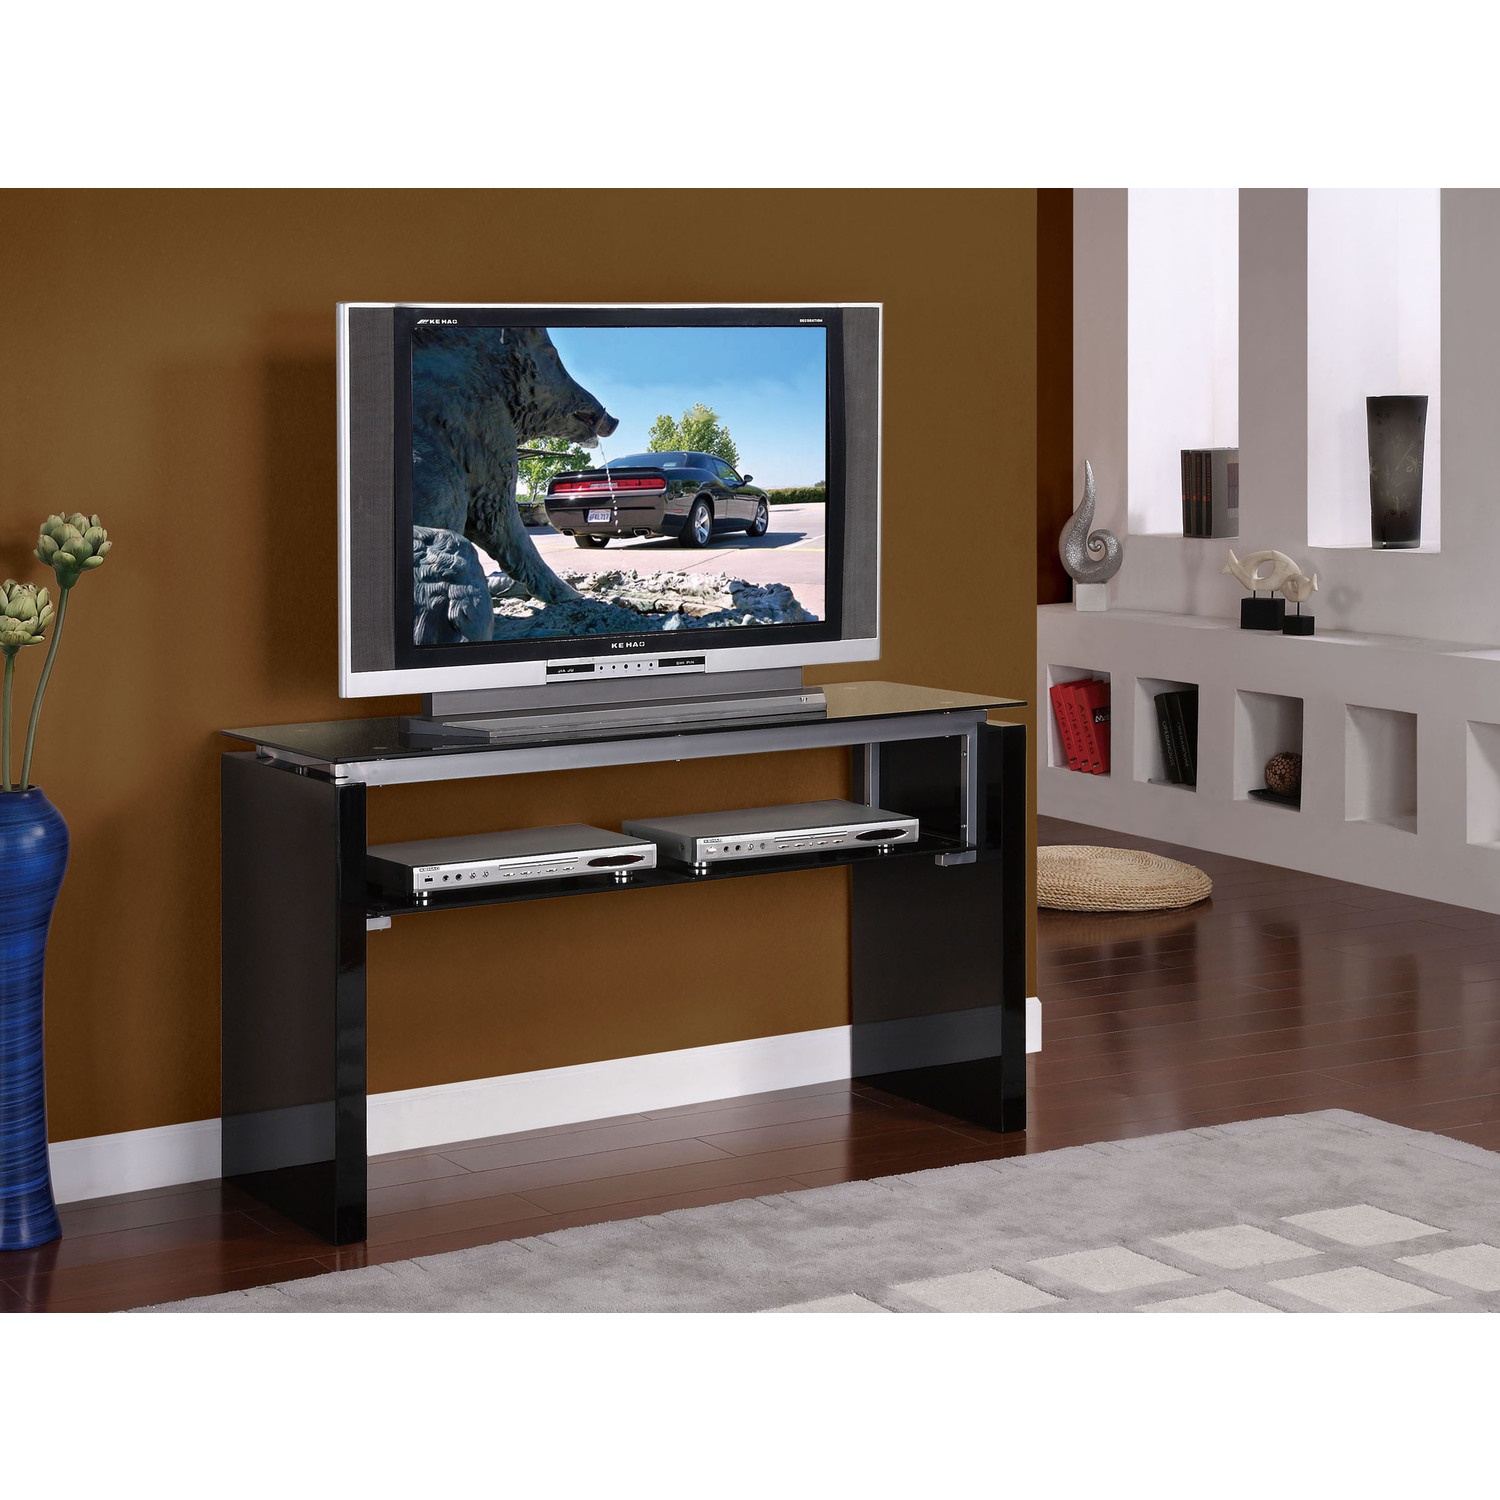 open tv stand  probrainsorg -  gloss black open console tv stand